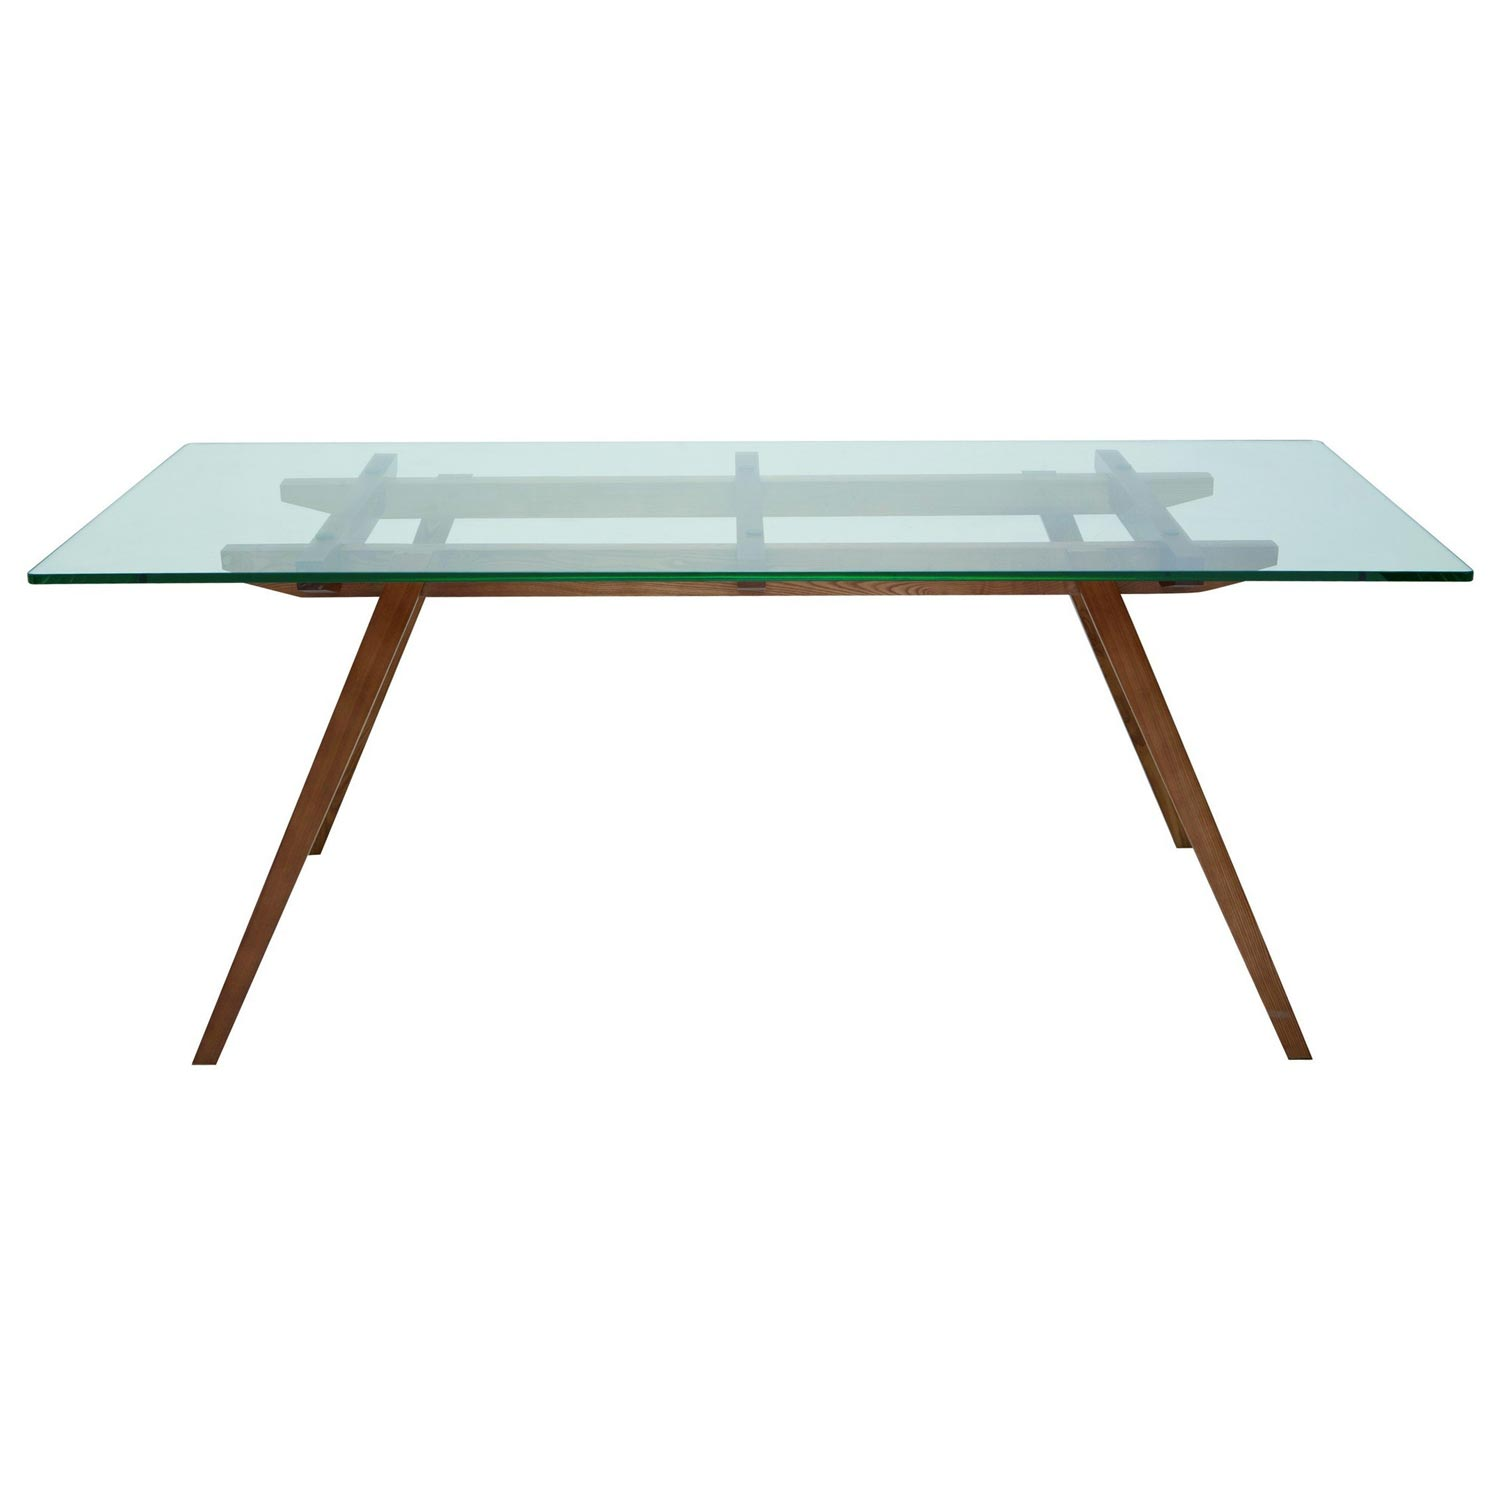 Franz contemporary glass dining table tempered glass for Contemporary glass dining table